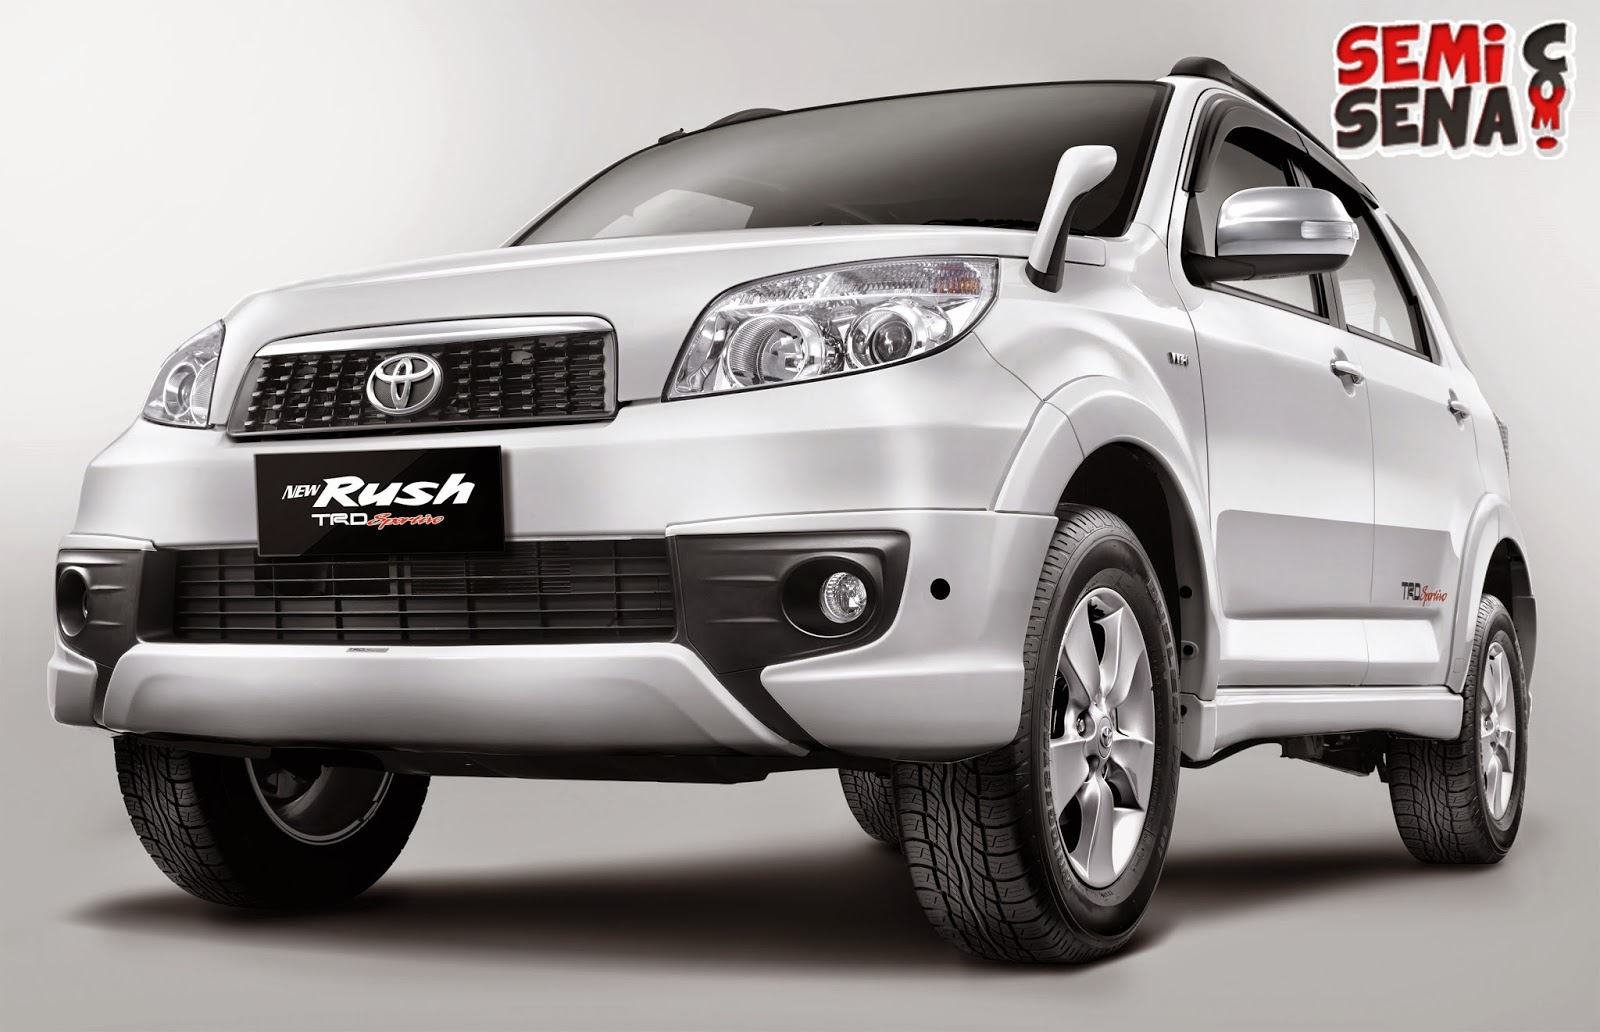 Toyota Yaris Trd Sportivo Specs All New Kijang Innova Silver Specifications And Latest Price Rush